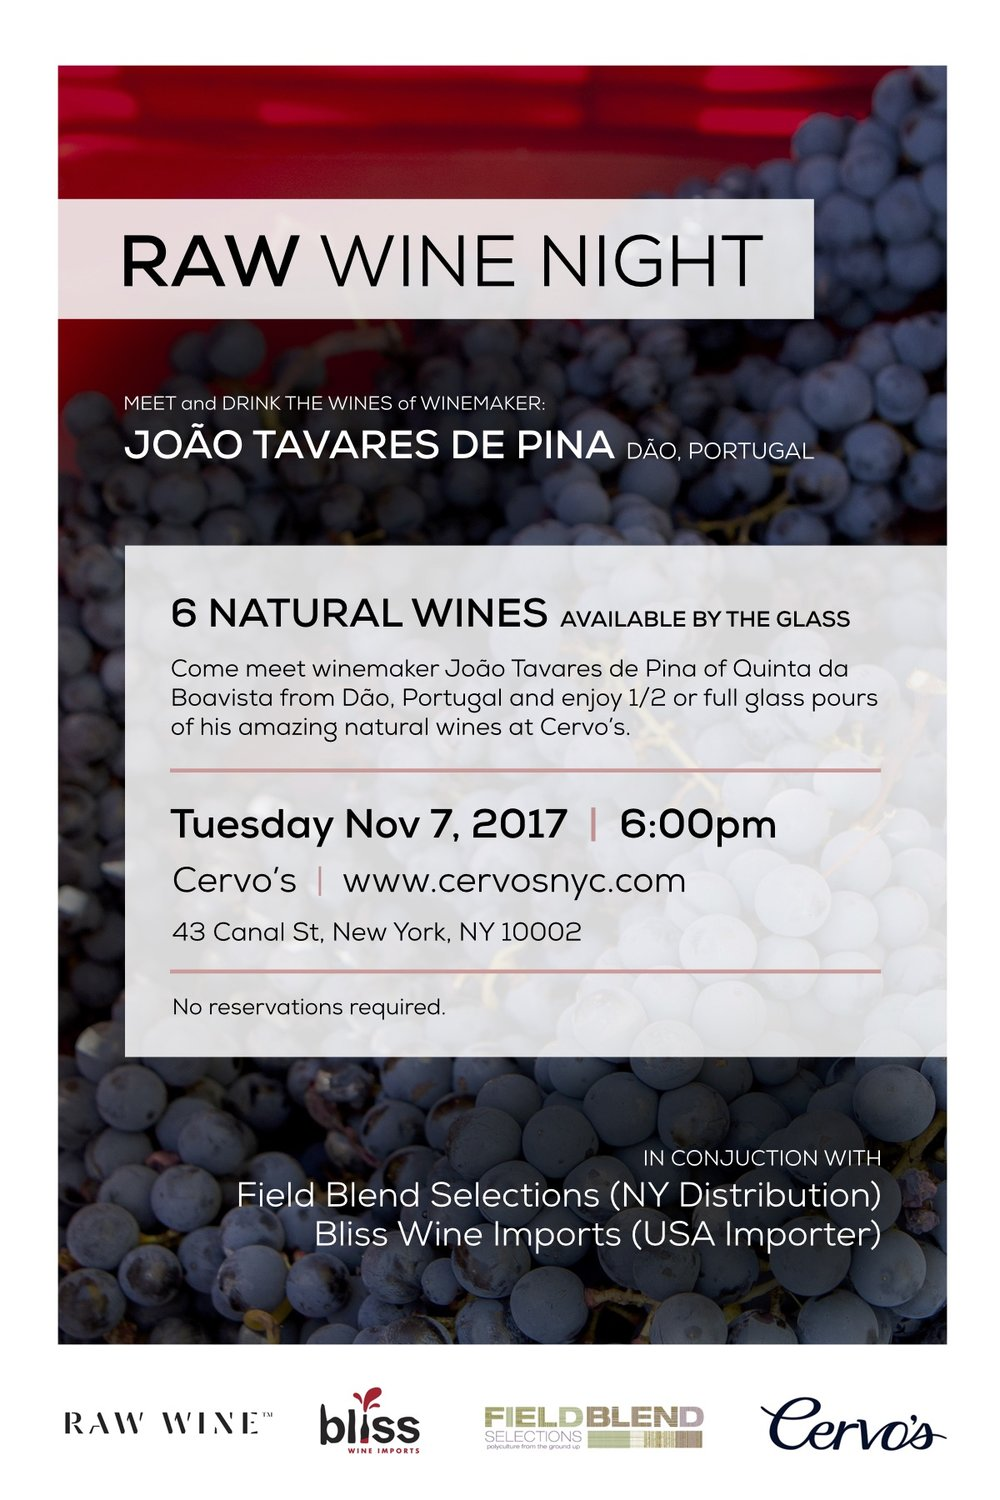 Join the amazing folks at Cervo's NYC on Tuesday, November 7th where Joao Tavares de Pina from Quinta da Boavista will be on hand to pour six amazing Portuguese wines from the Dao going back to 2002. Book now at https://www.cervosnyc.com/ or stop by. Walk-ins are encouraged!